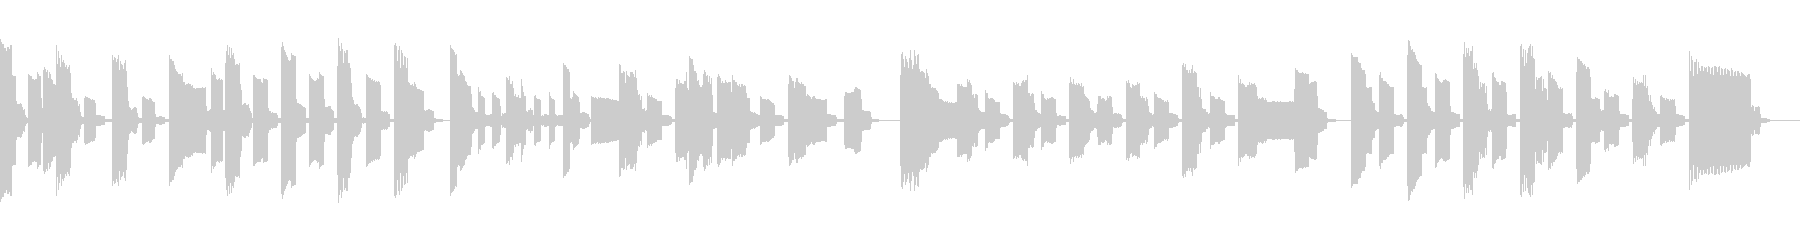 Sounds like NES sound's unreproduced waveform